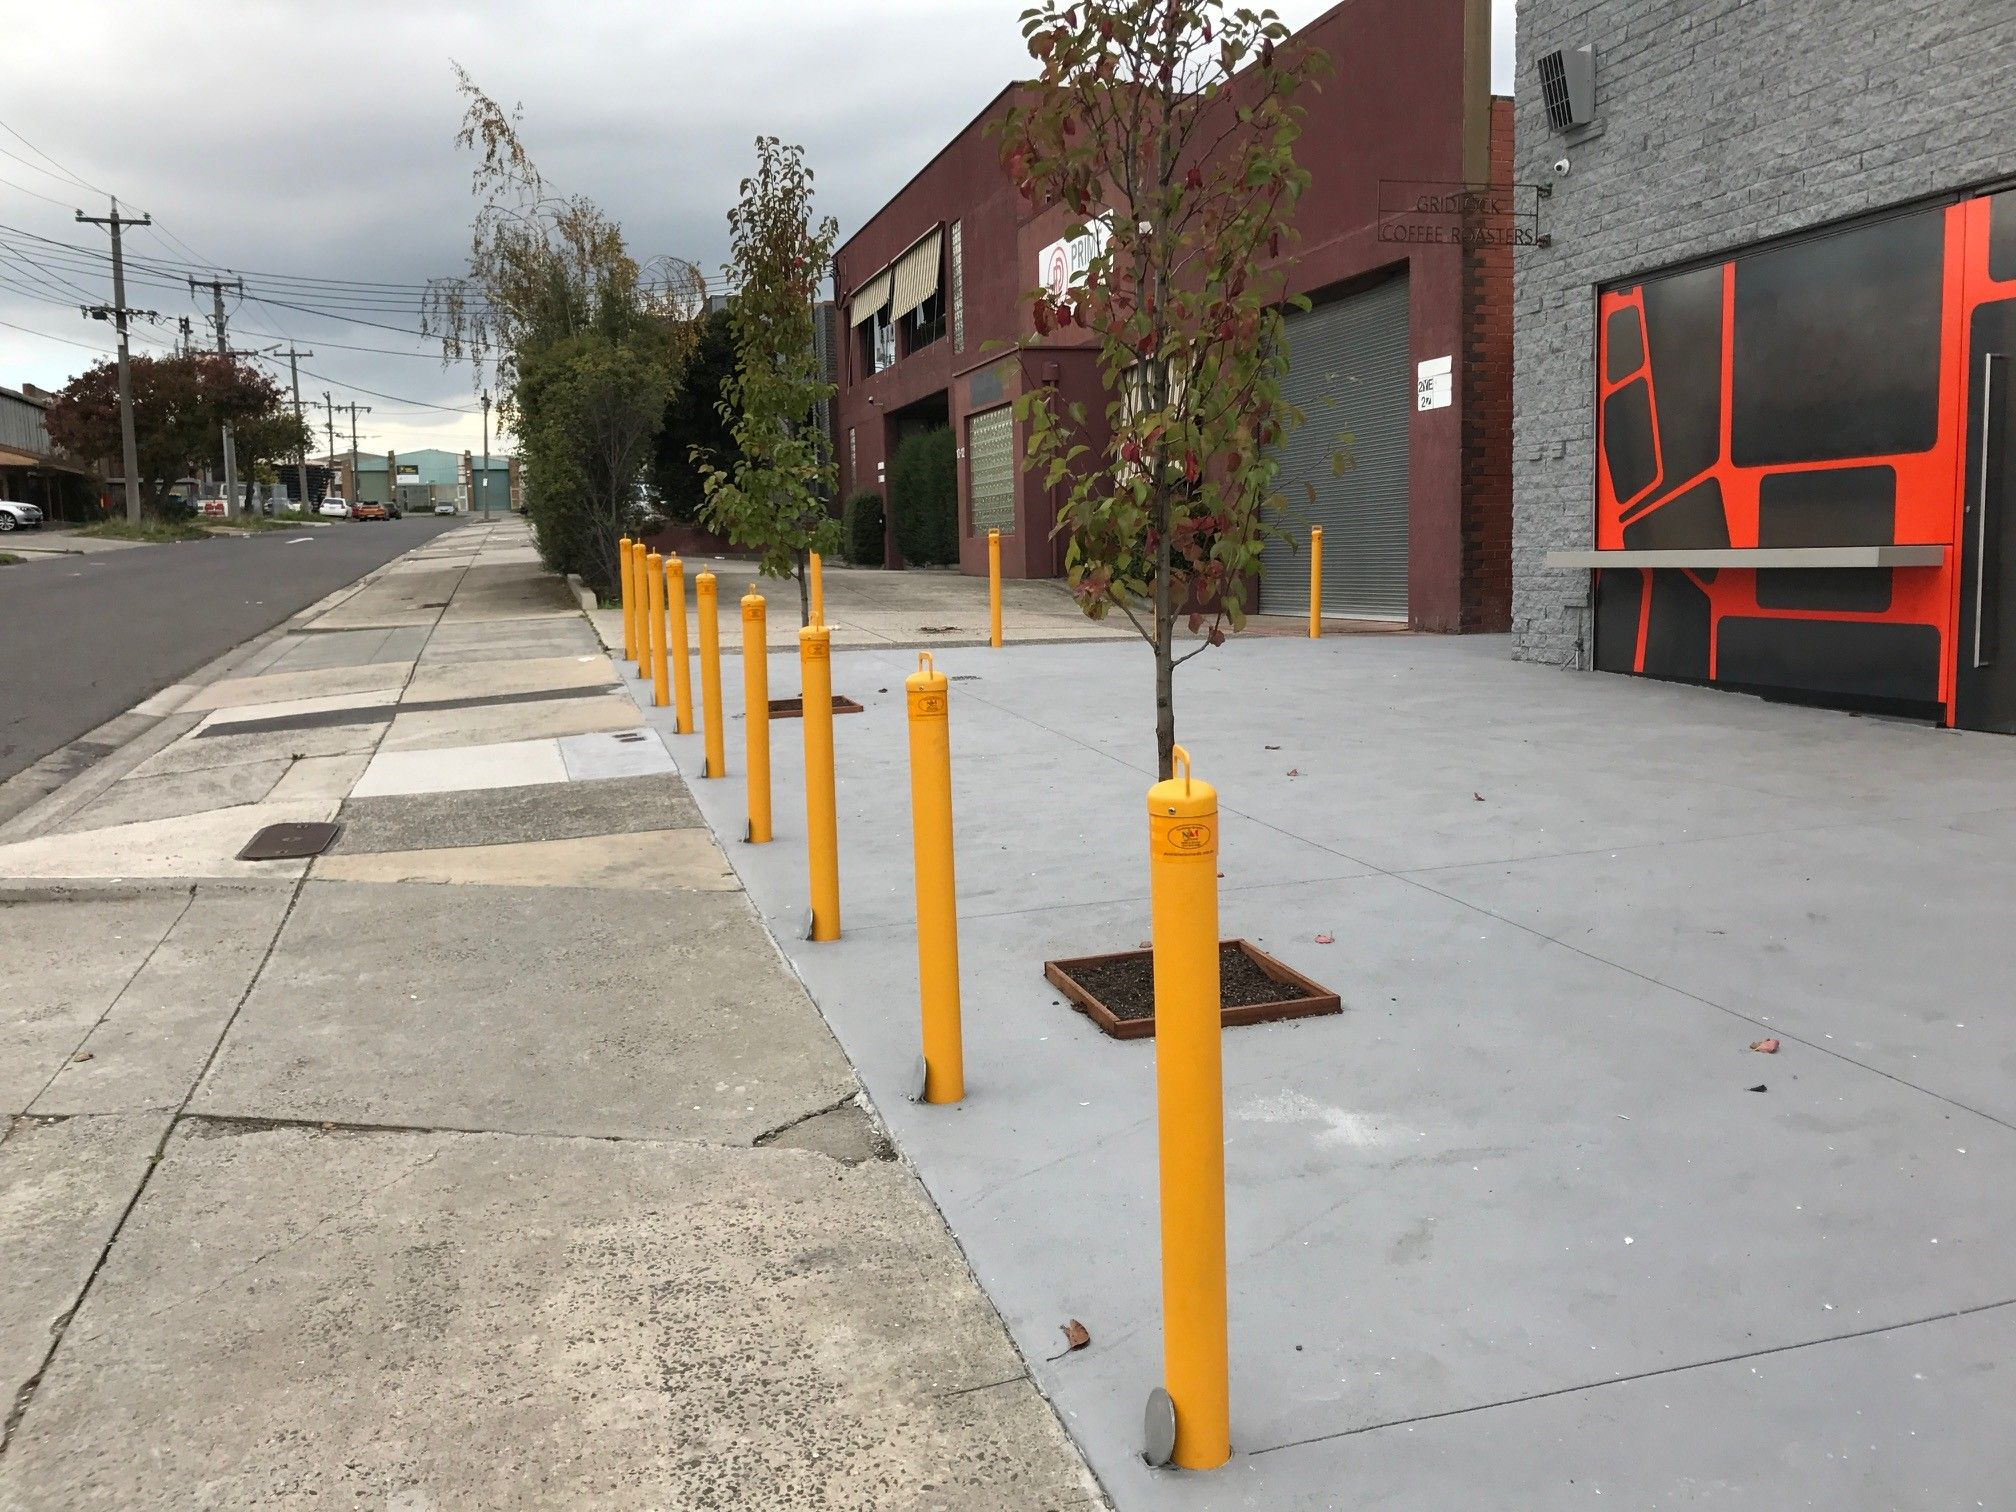 Simple installations are giving small business owners peace of mind.  http://www.australianbollards.com.au/blog/small-businesses-get-big-protection